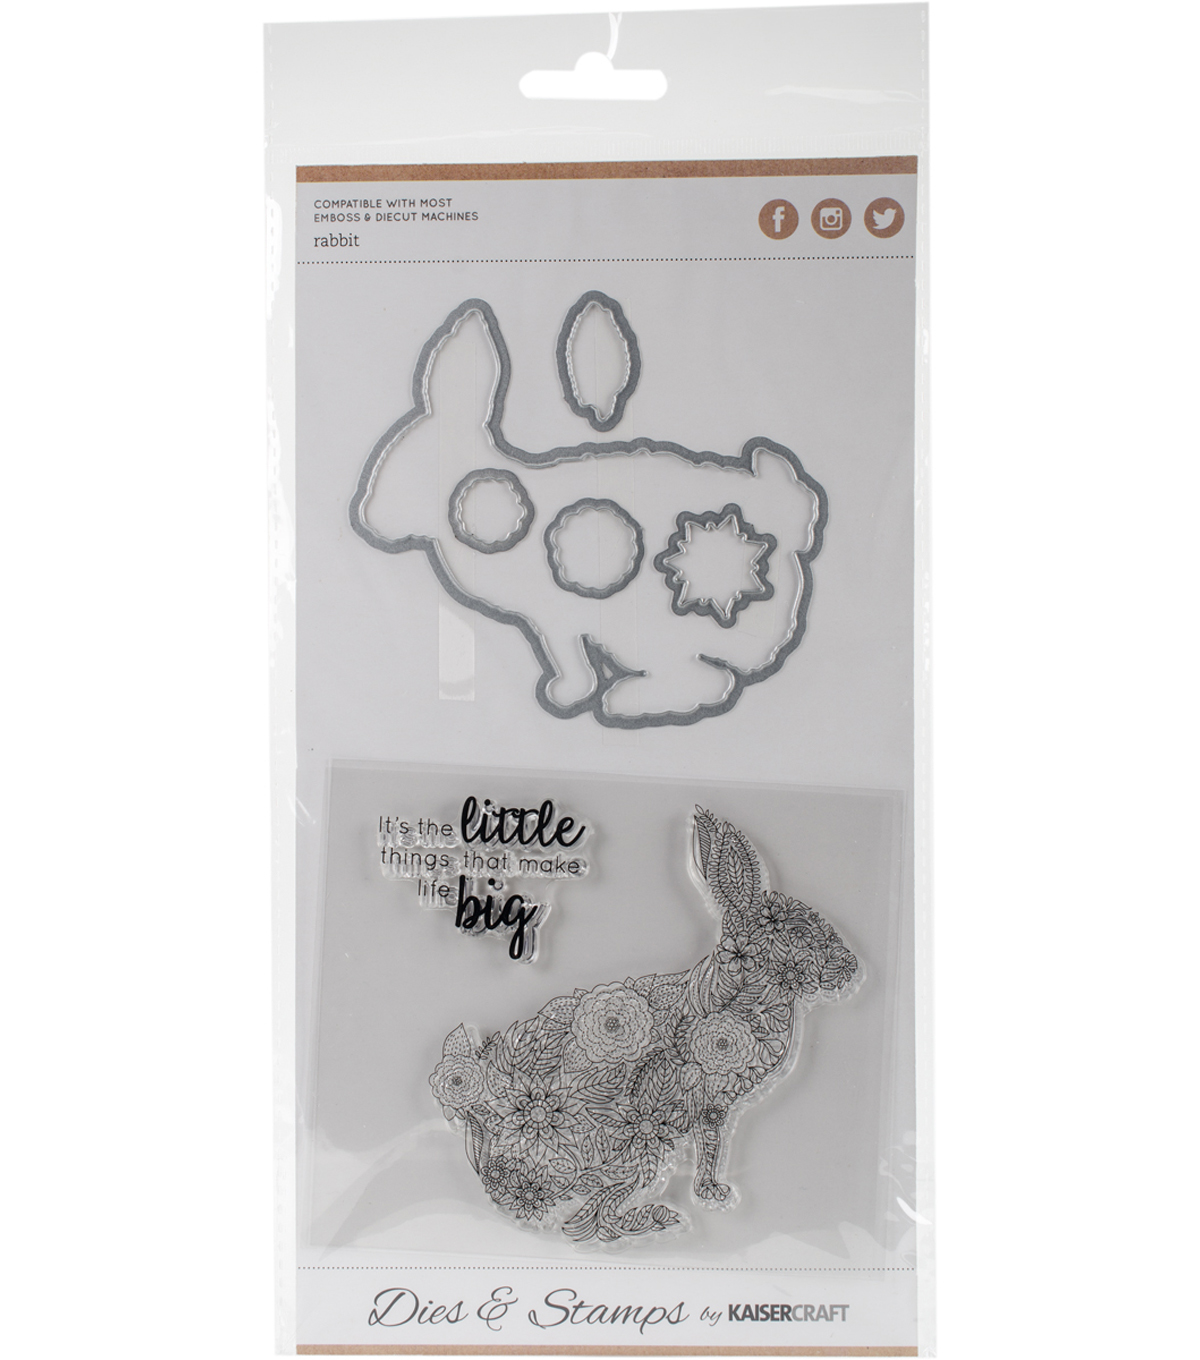 Kaisercraft Dies & Stamps-Rabbit .5\u0022X.5\u0022 To 3.75\u0022X3.75\u0022